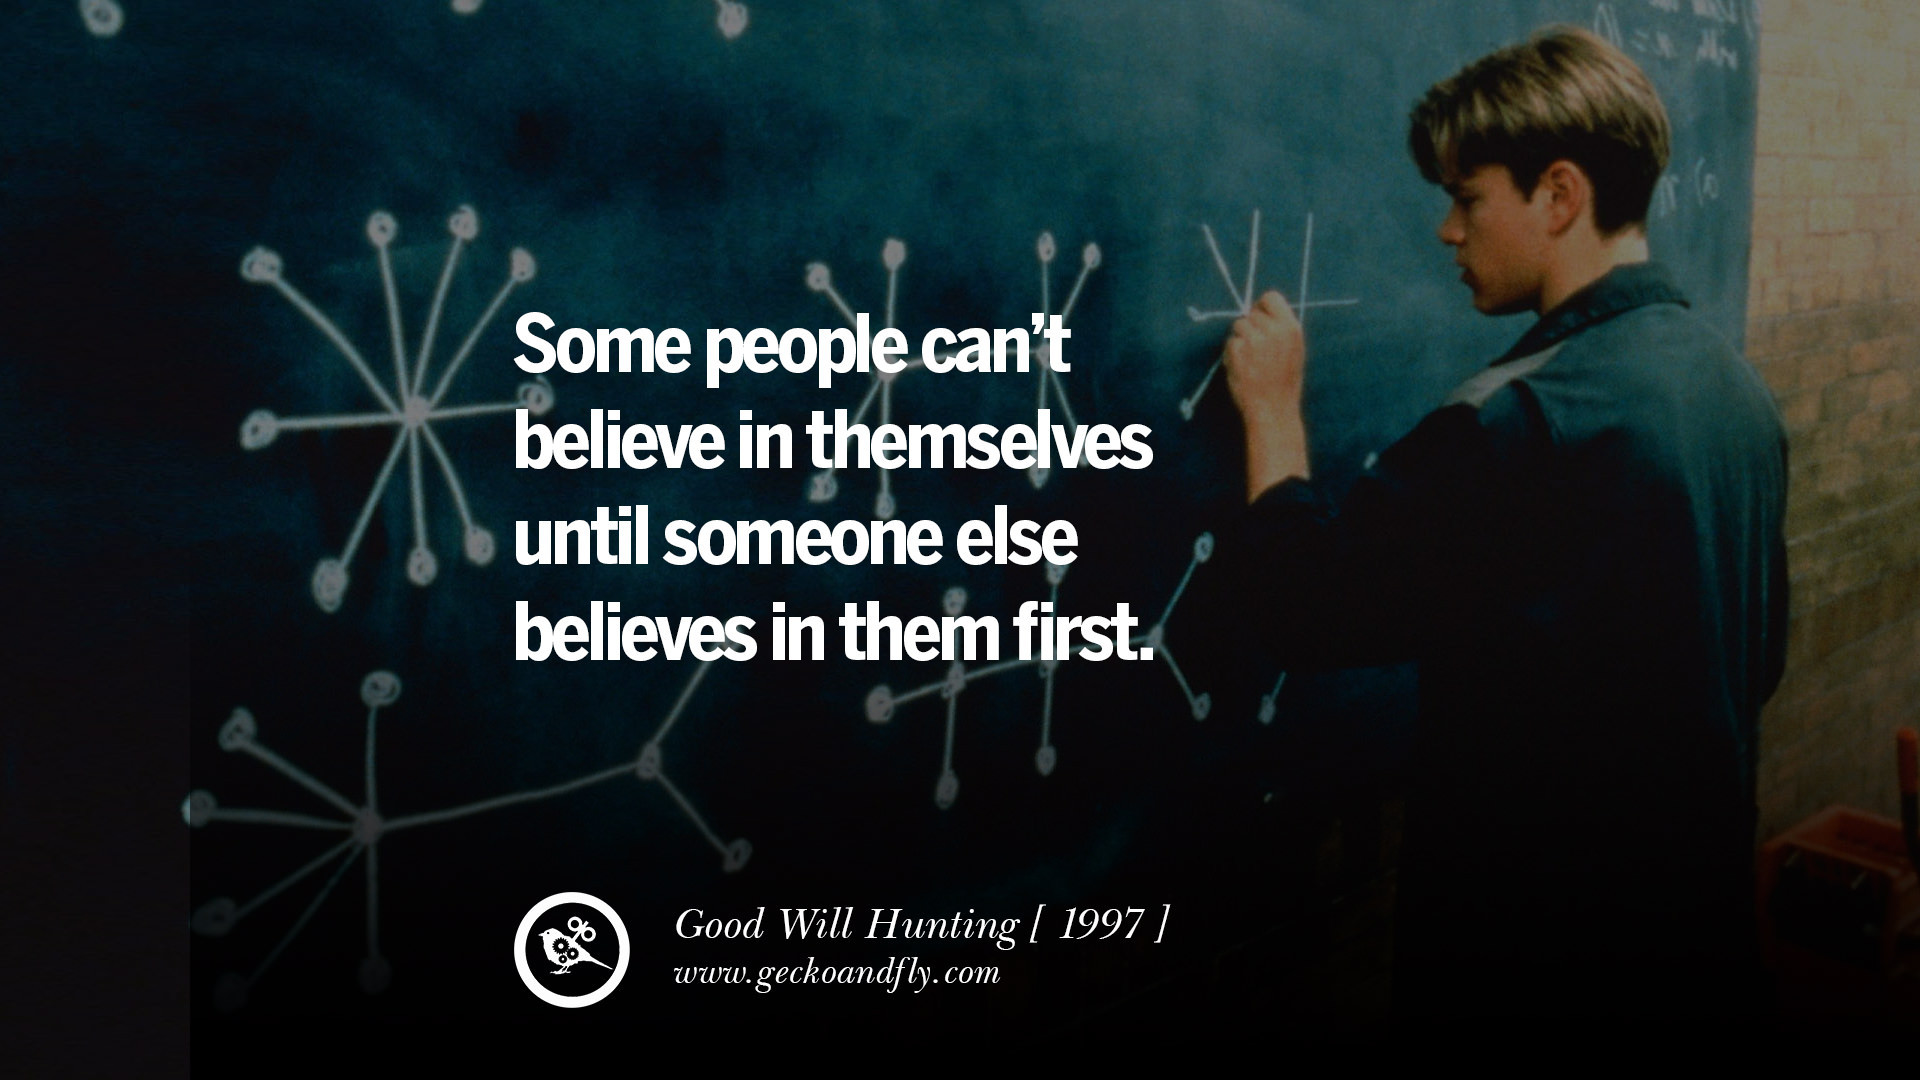 Good Will Hunting Love Quote  20 Famous Movie Quotes on Love Life Relationship